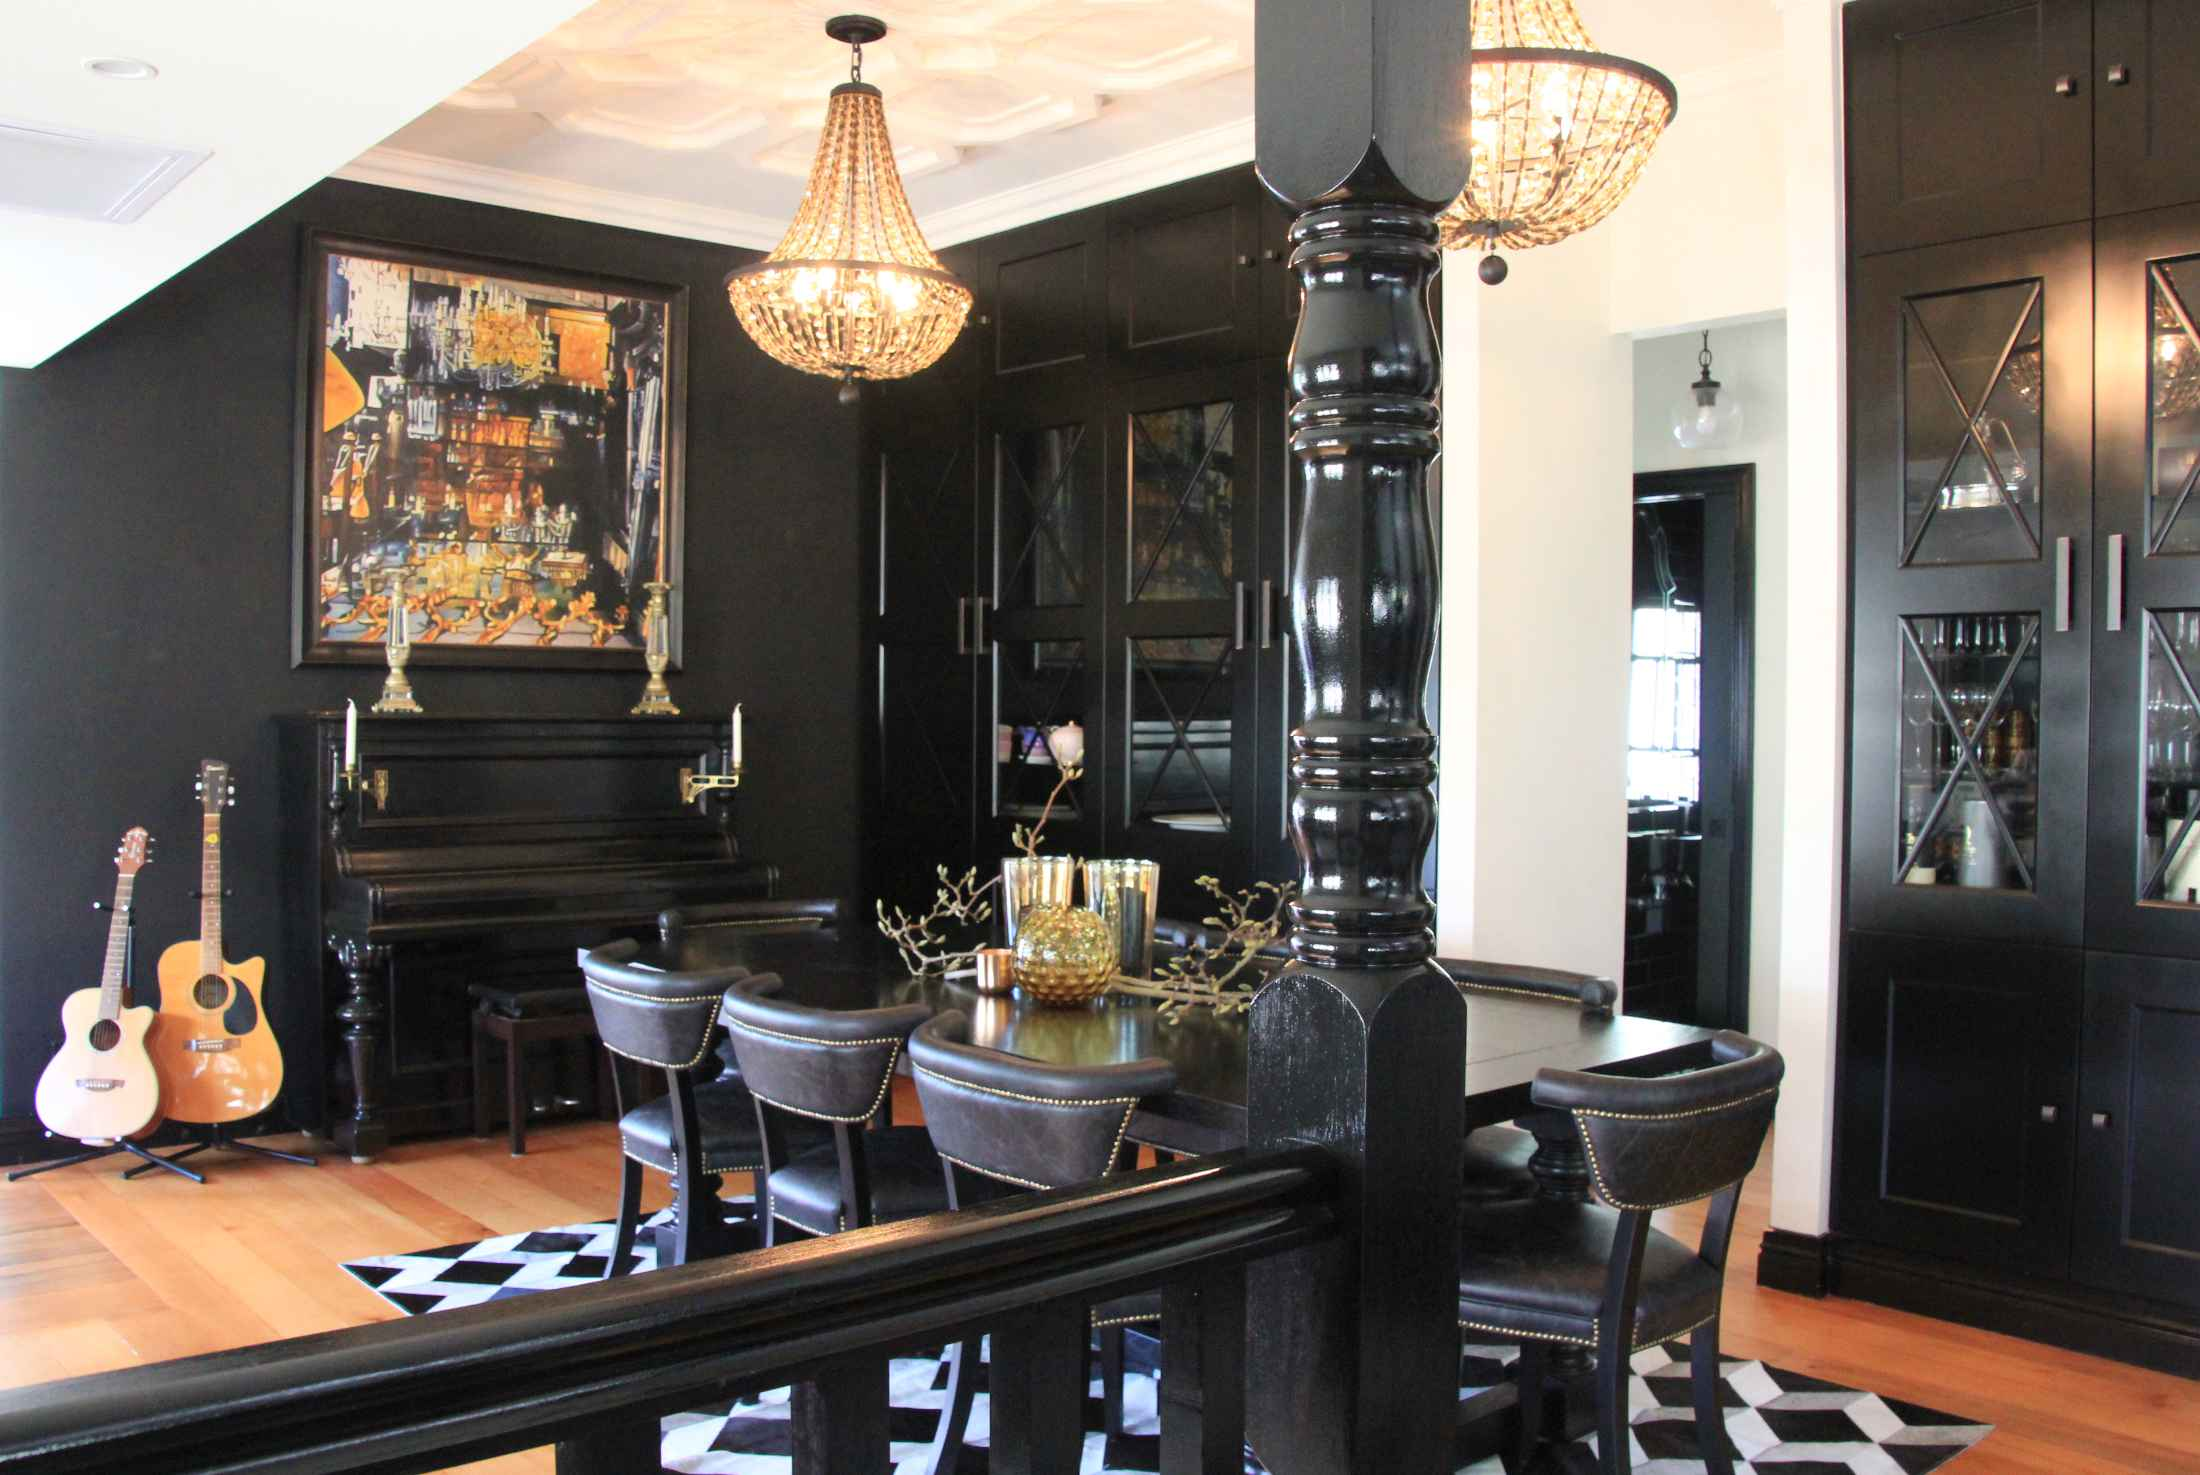 Artwork and chandeliers add focus to the dining room